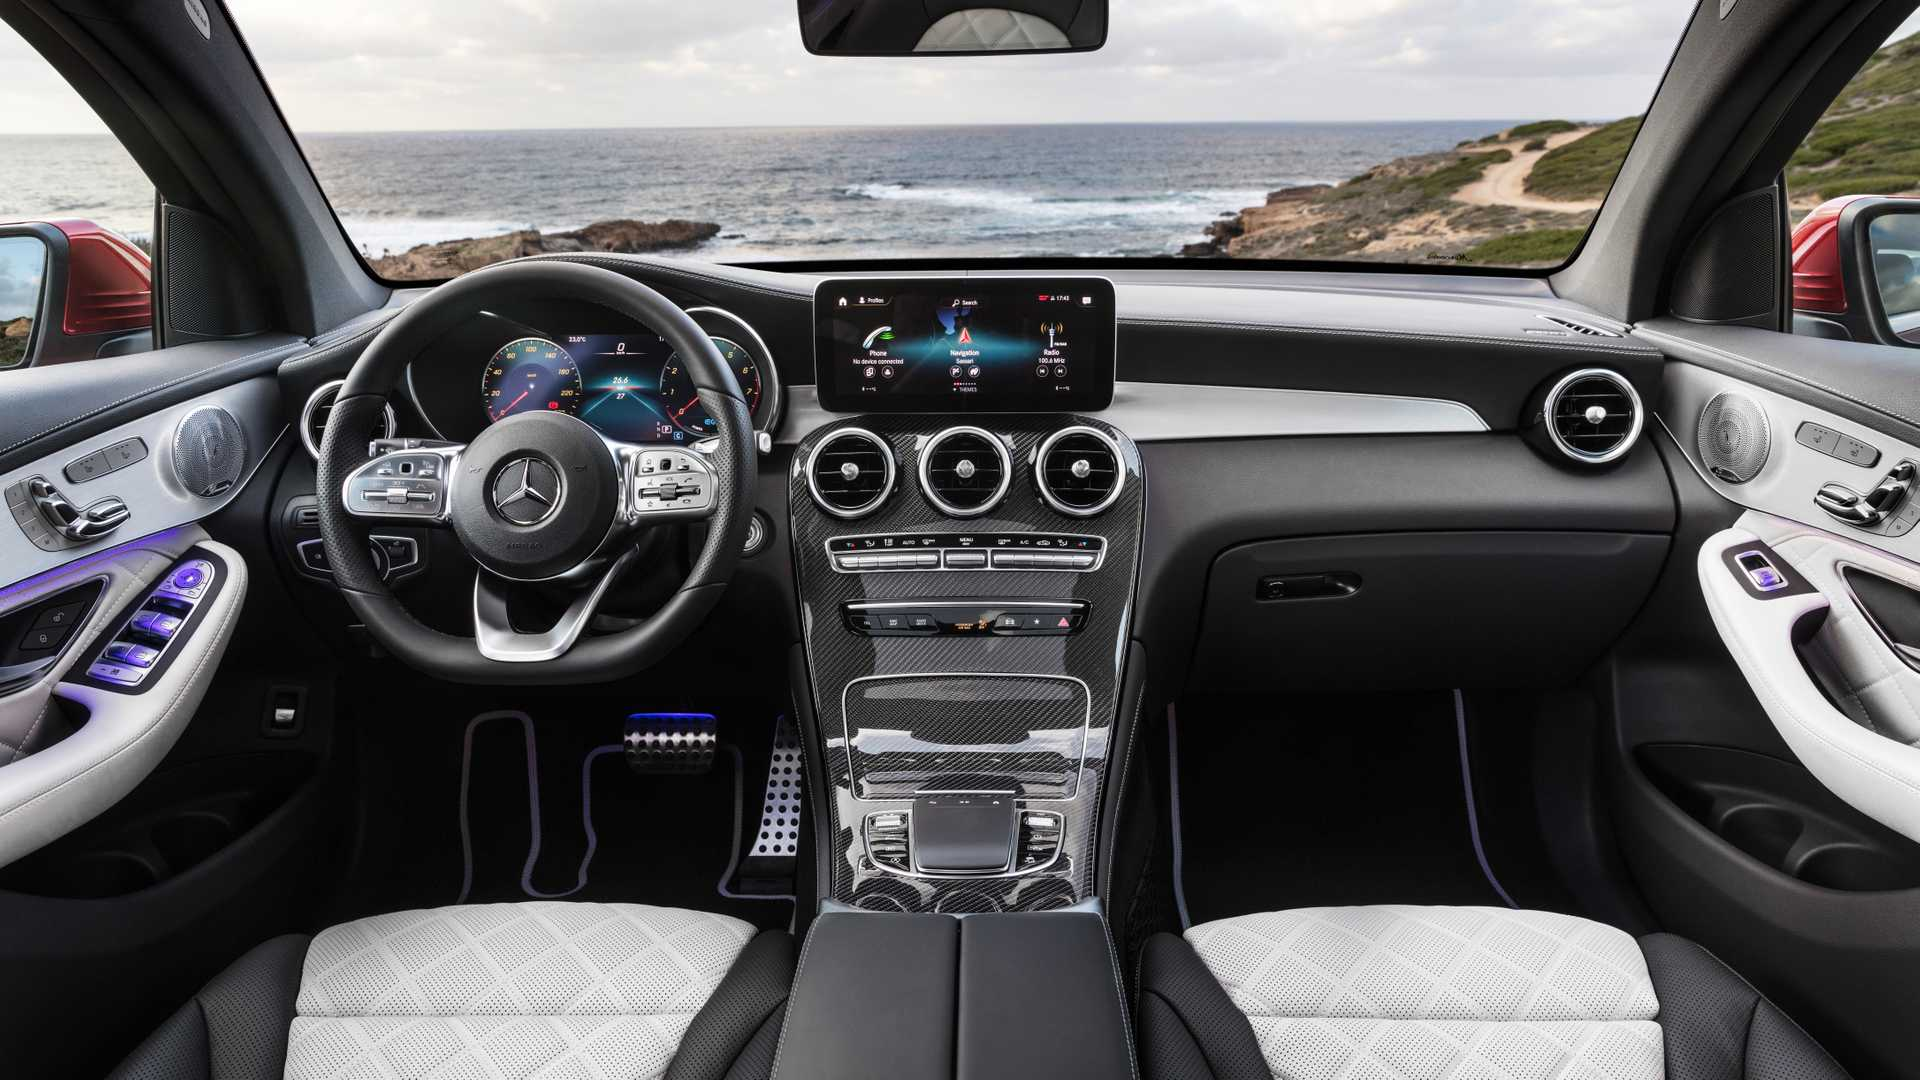 Mercedes Glc Coupe 2019 Interior 05